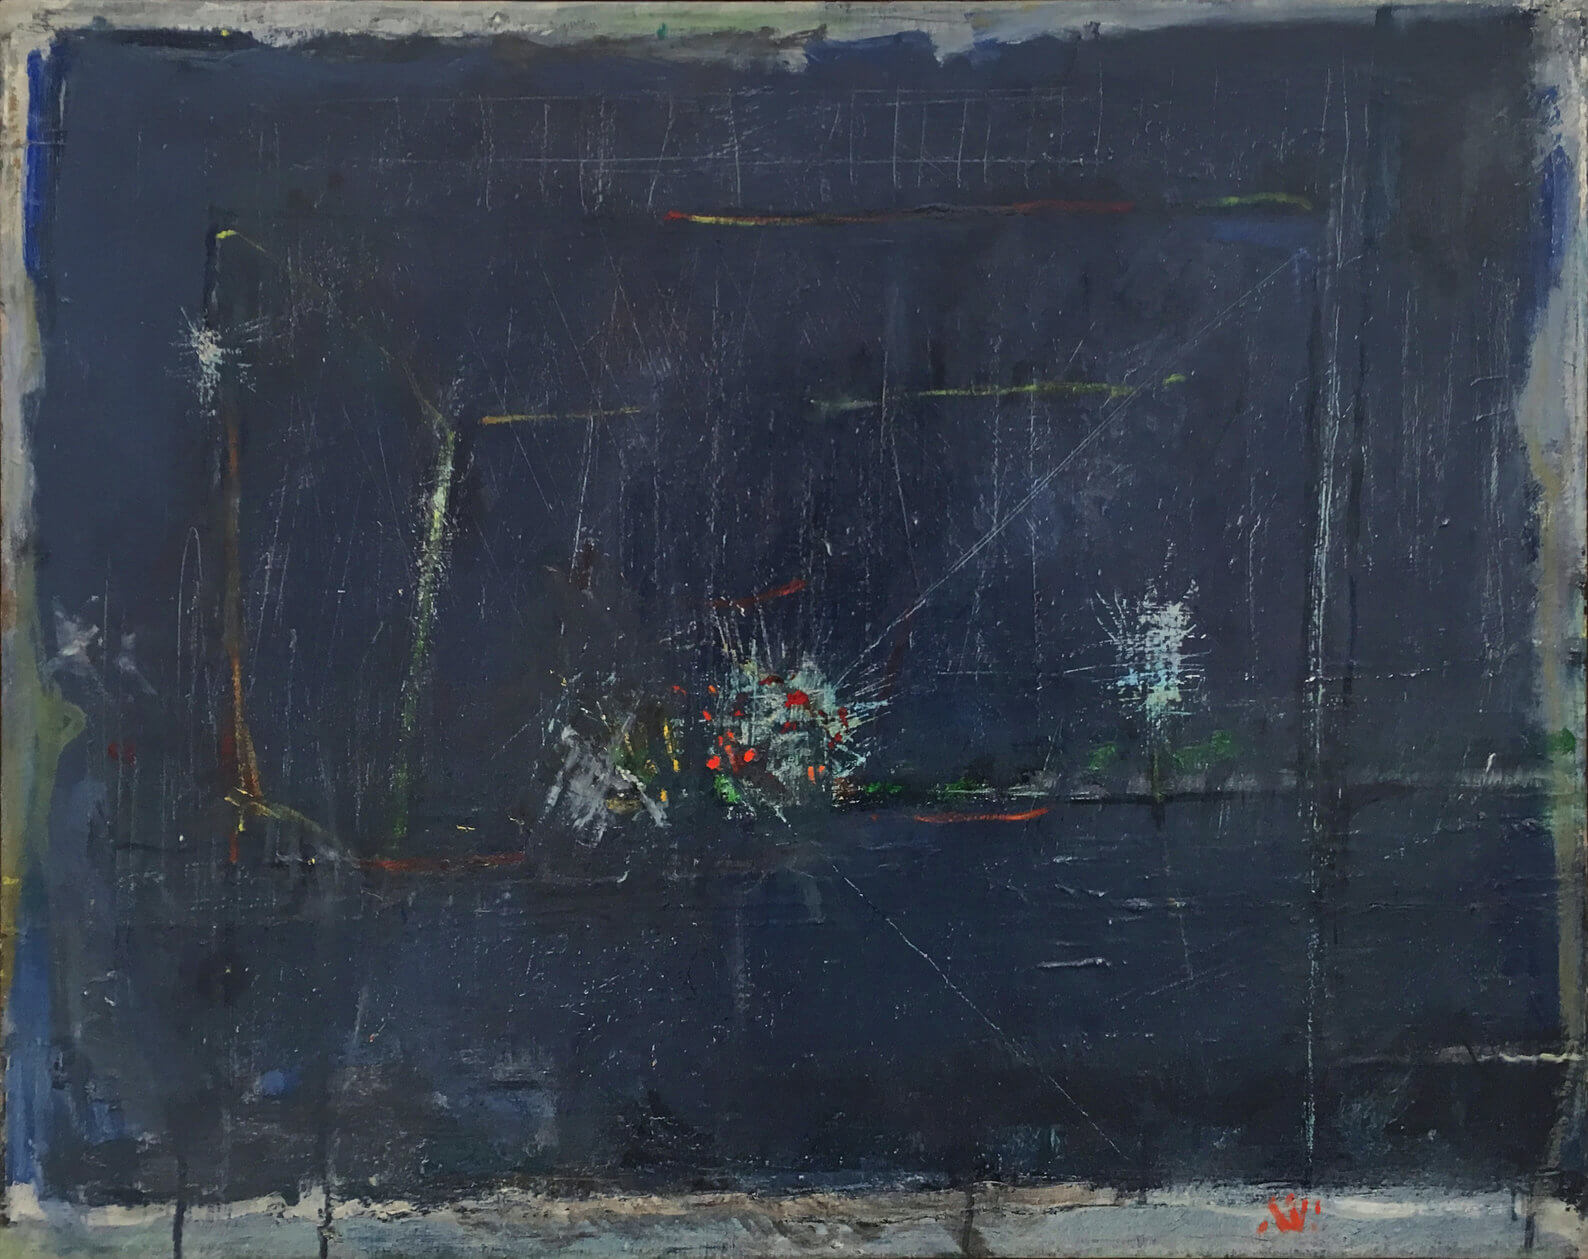 1475_Yehezkel Streichman, 1965, Oil on canvas, 65x81 cm 9,500$-1588x1259